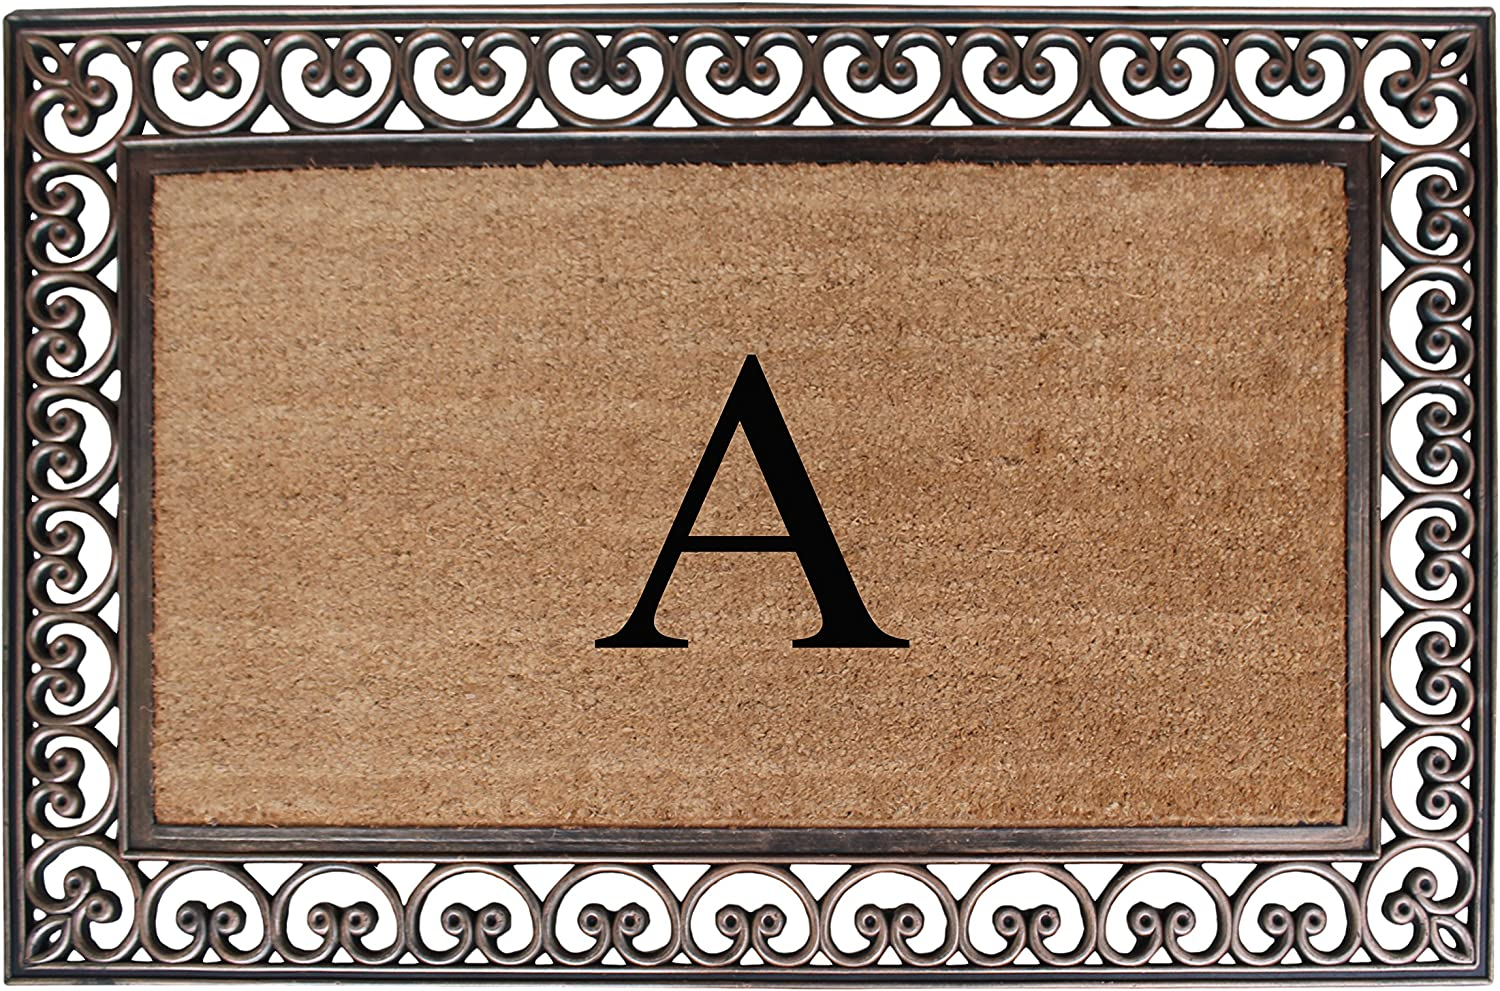 A1 HOME COLLECTIONS Rubber and Coir Classic Paisley Border, Double Doormat, X-Large(A1HOME200085A)